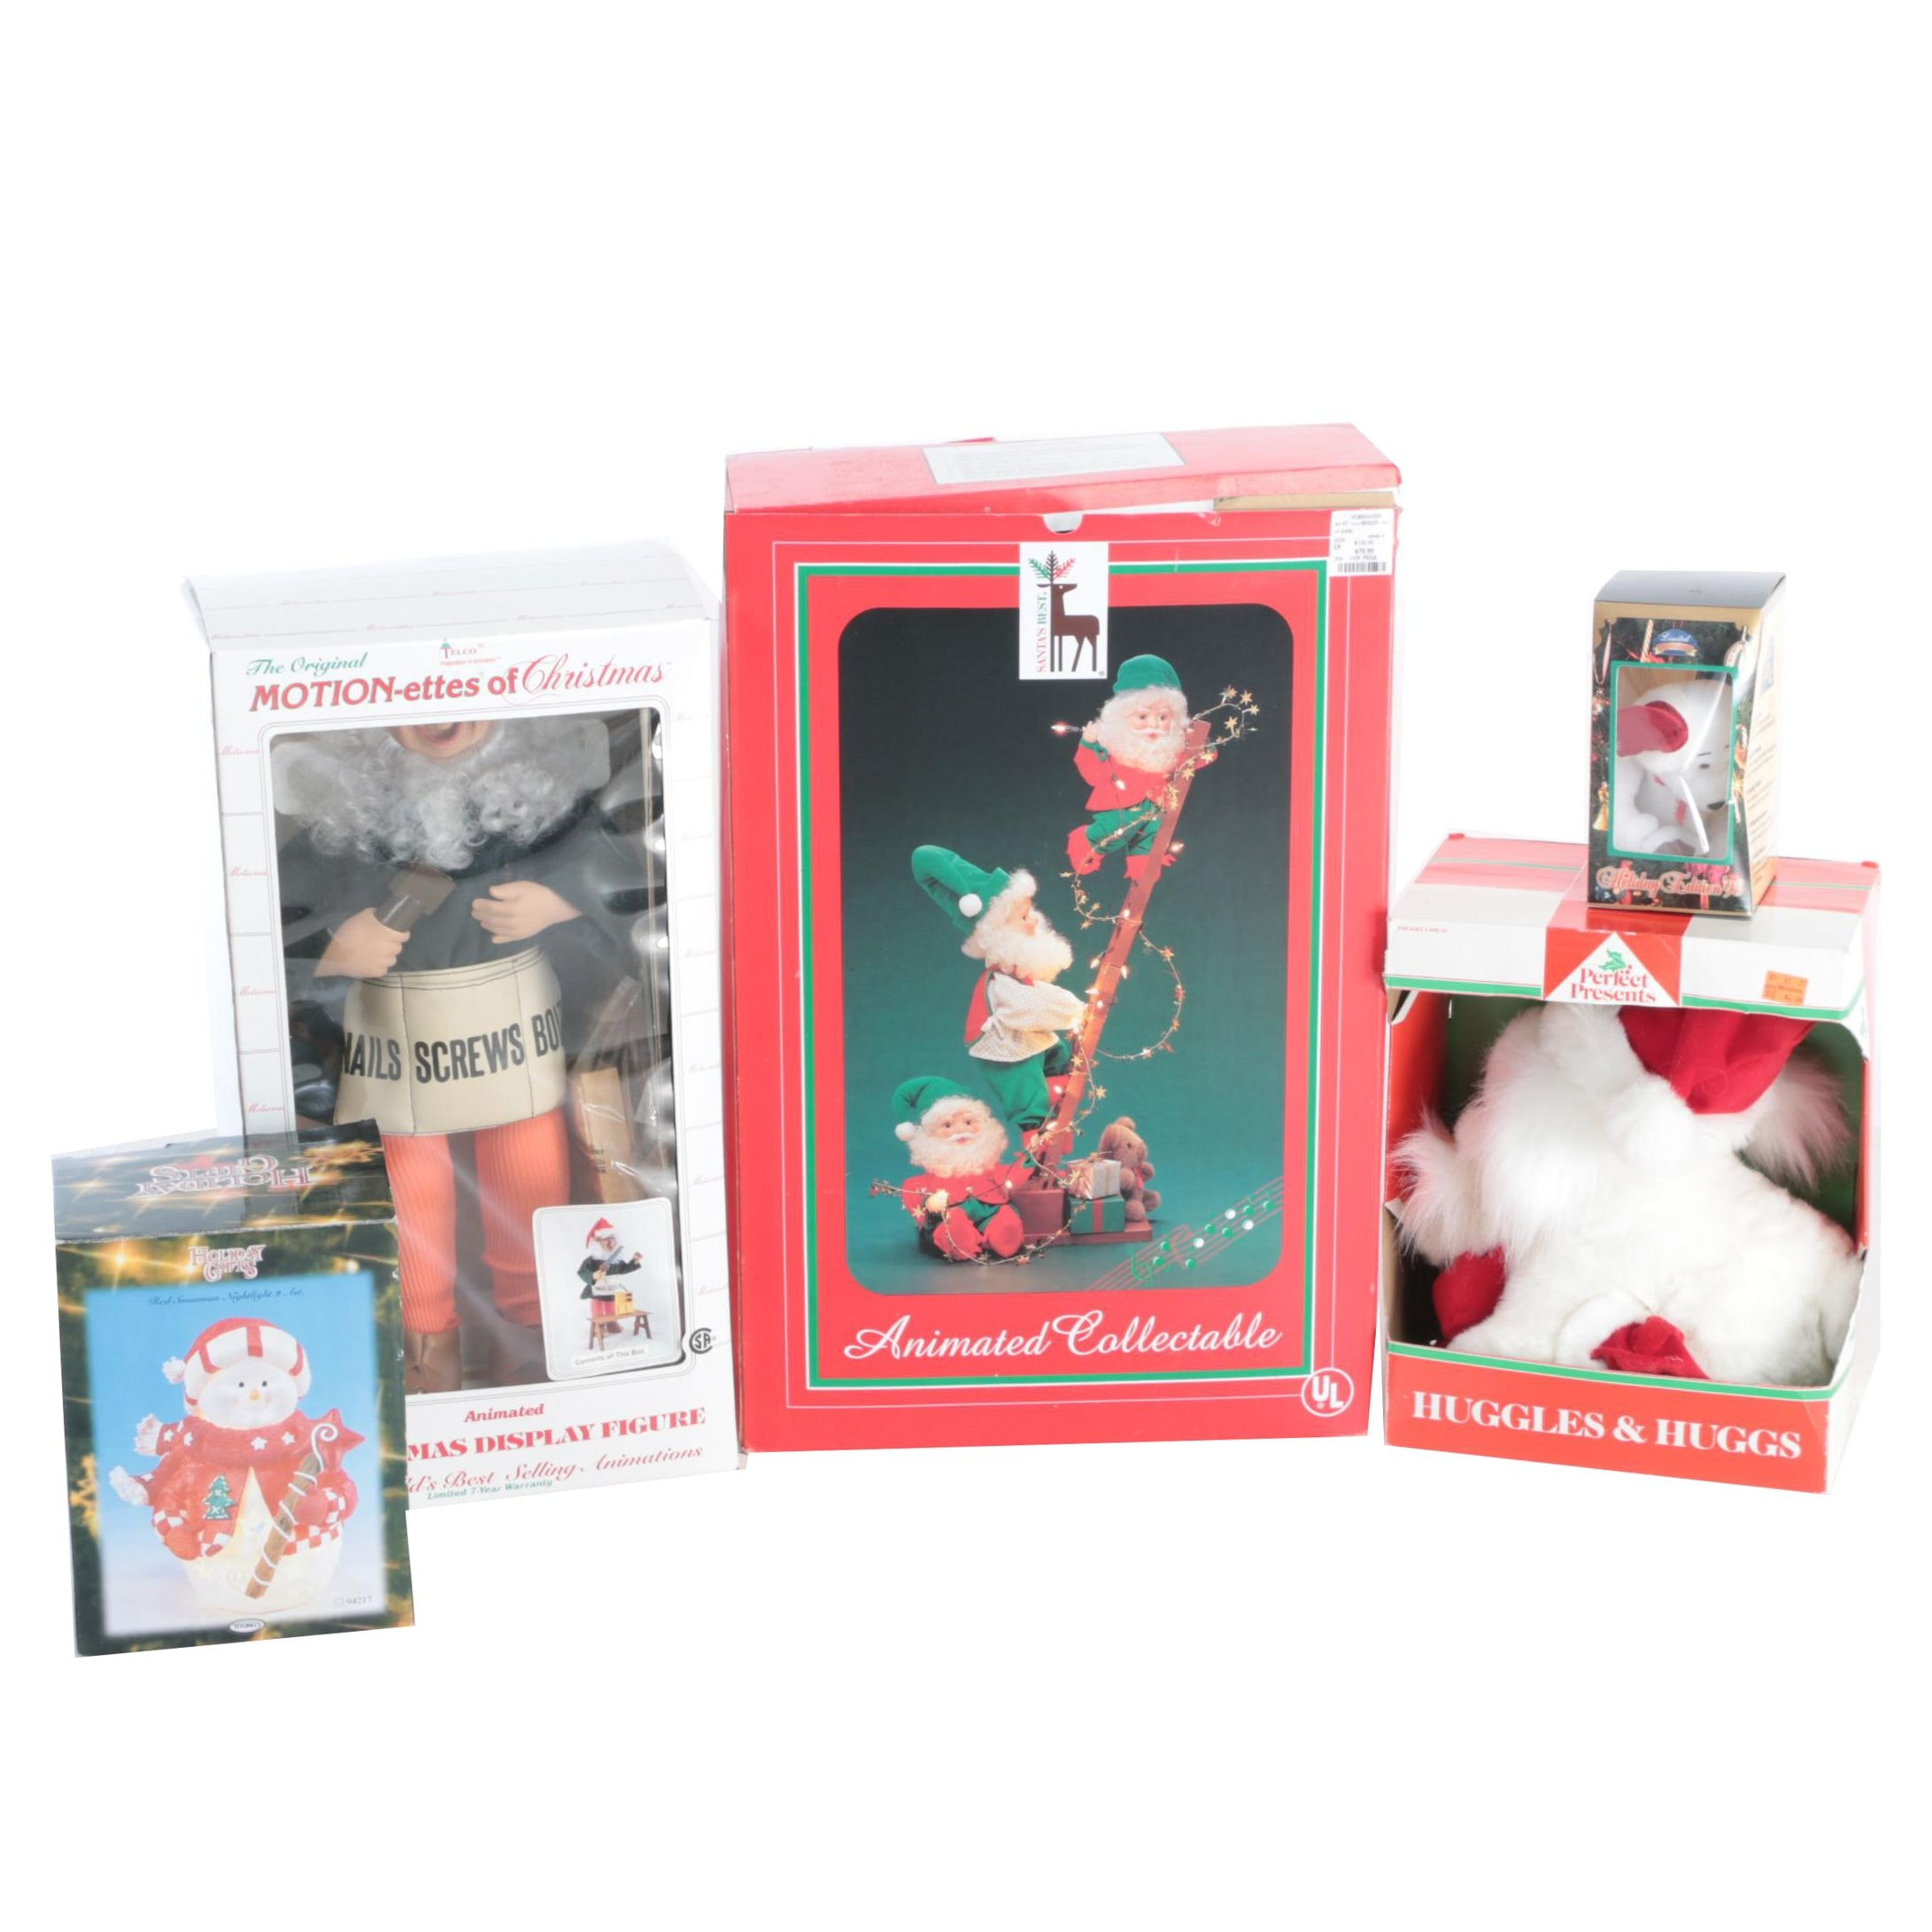 Christmas Themed Plush Toys and Decor